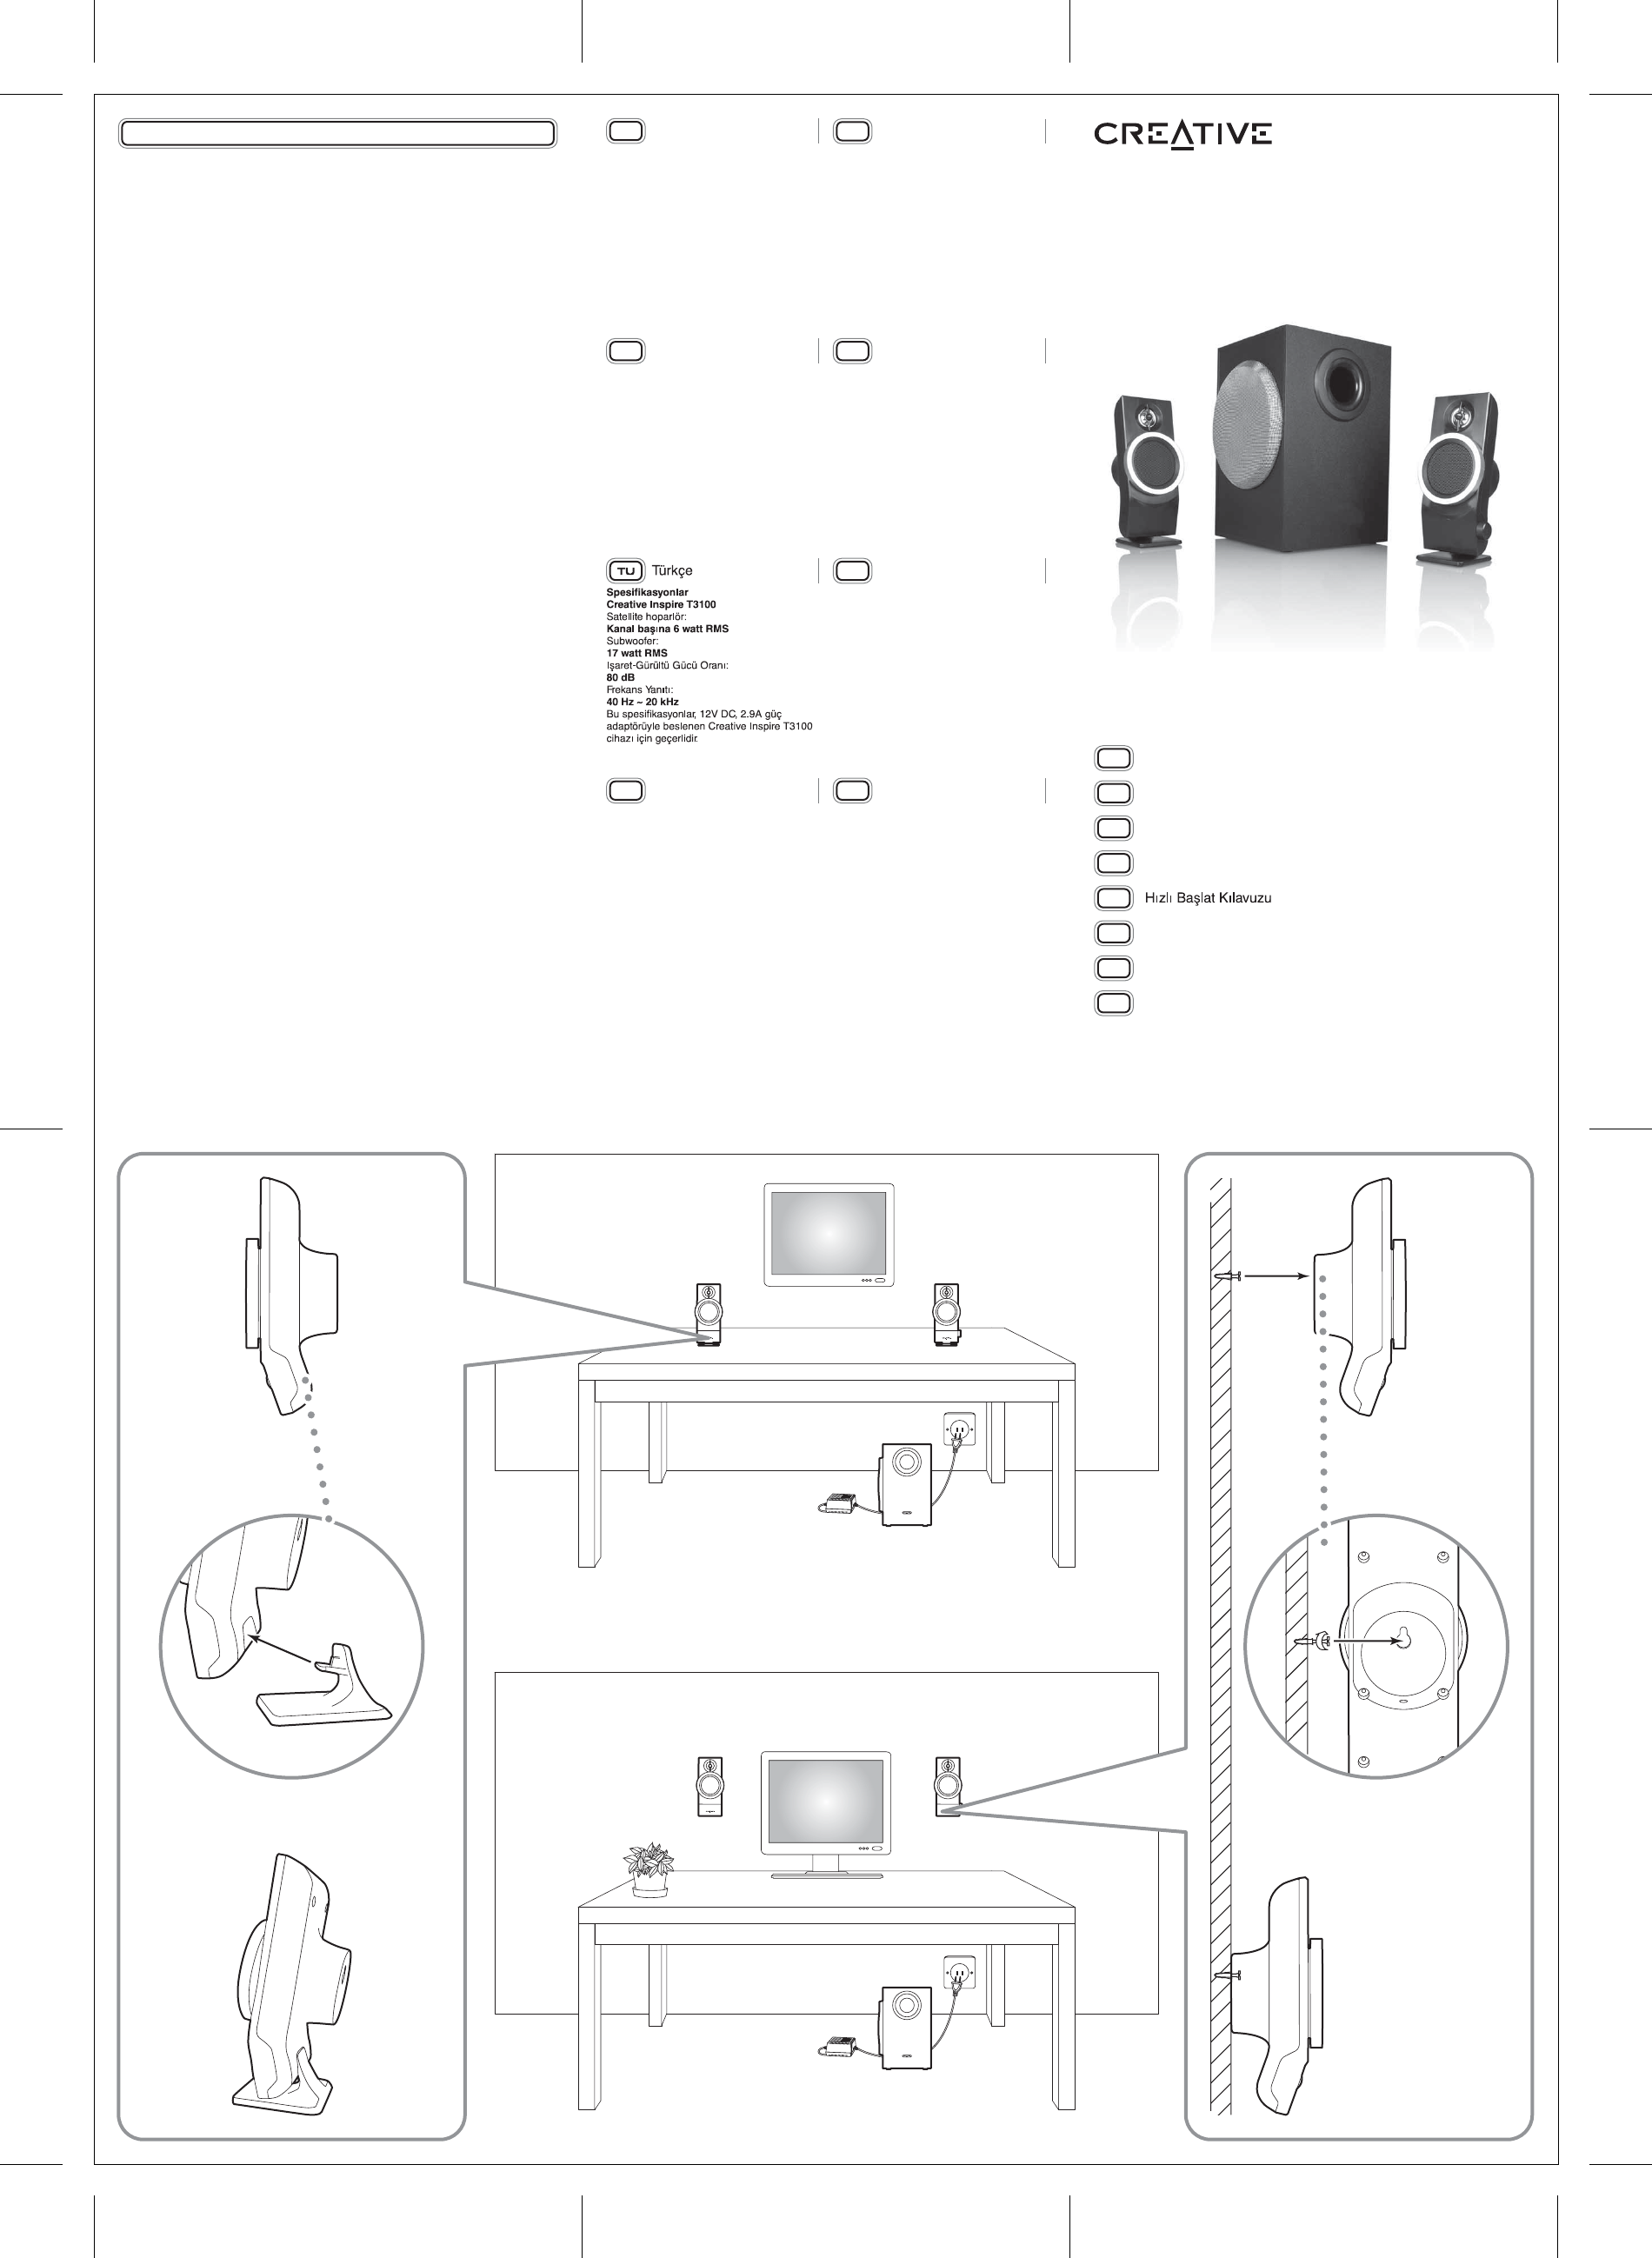 Hk395 Subwoofer Wiring Diagram Auto Electrical Get Free Image About